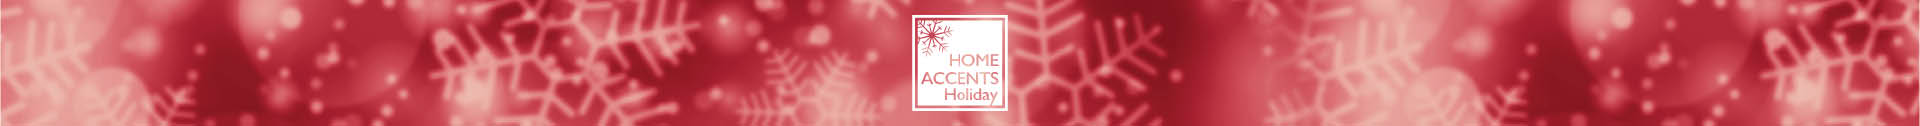 Home Accents Holiday banner